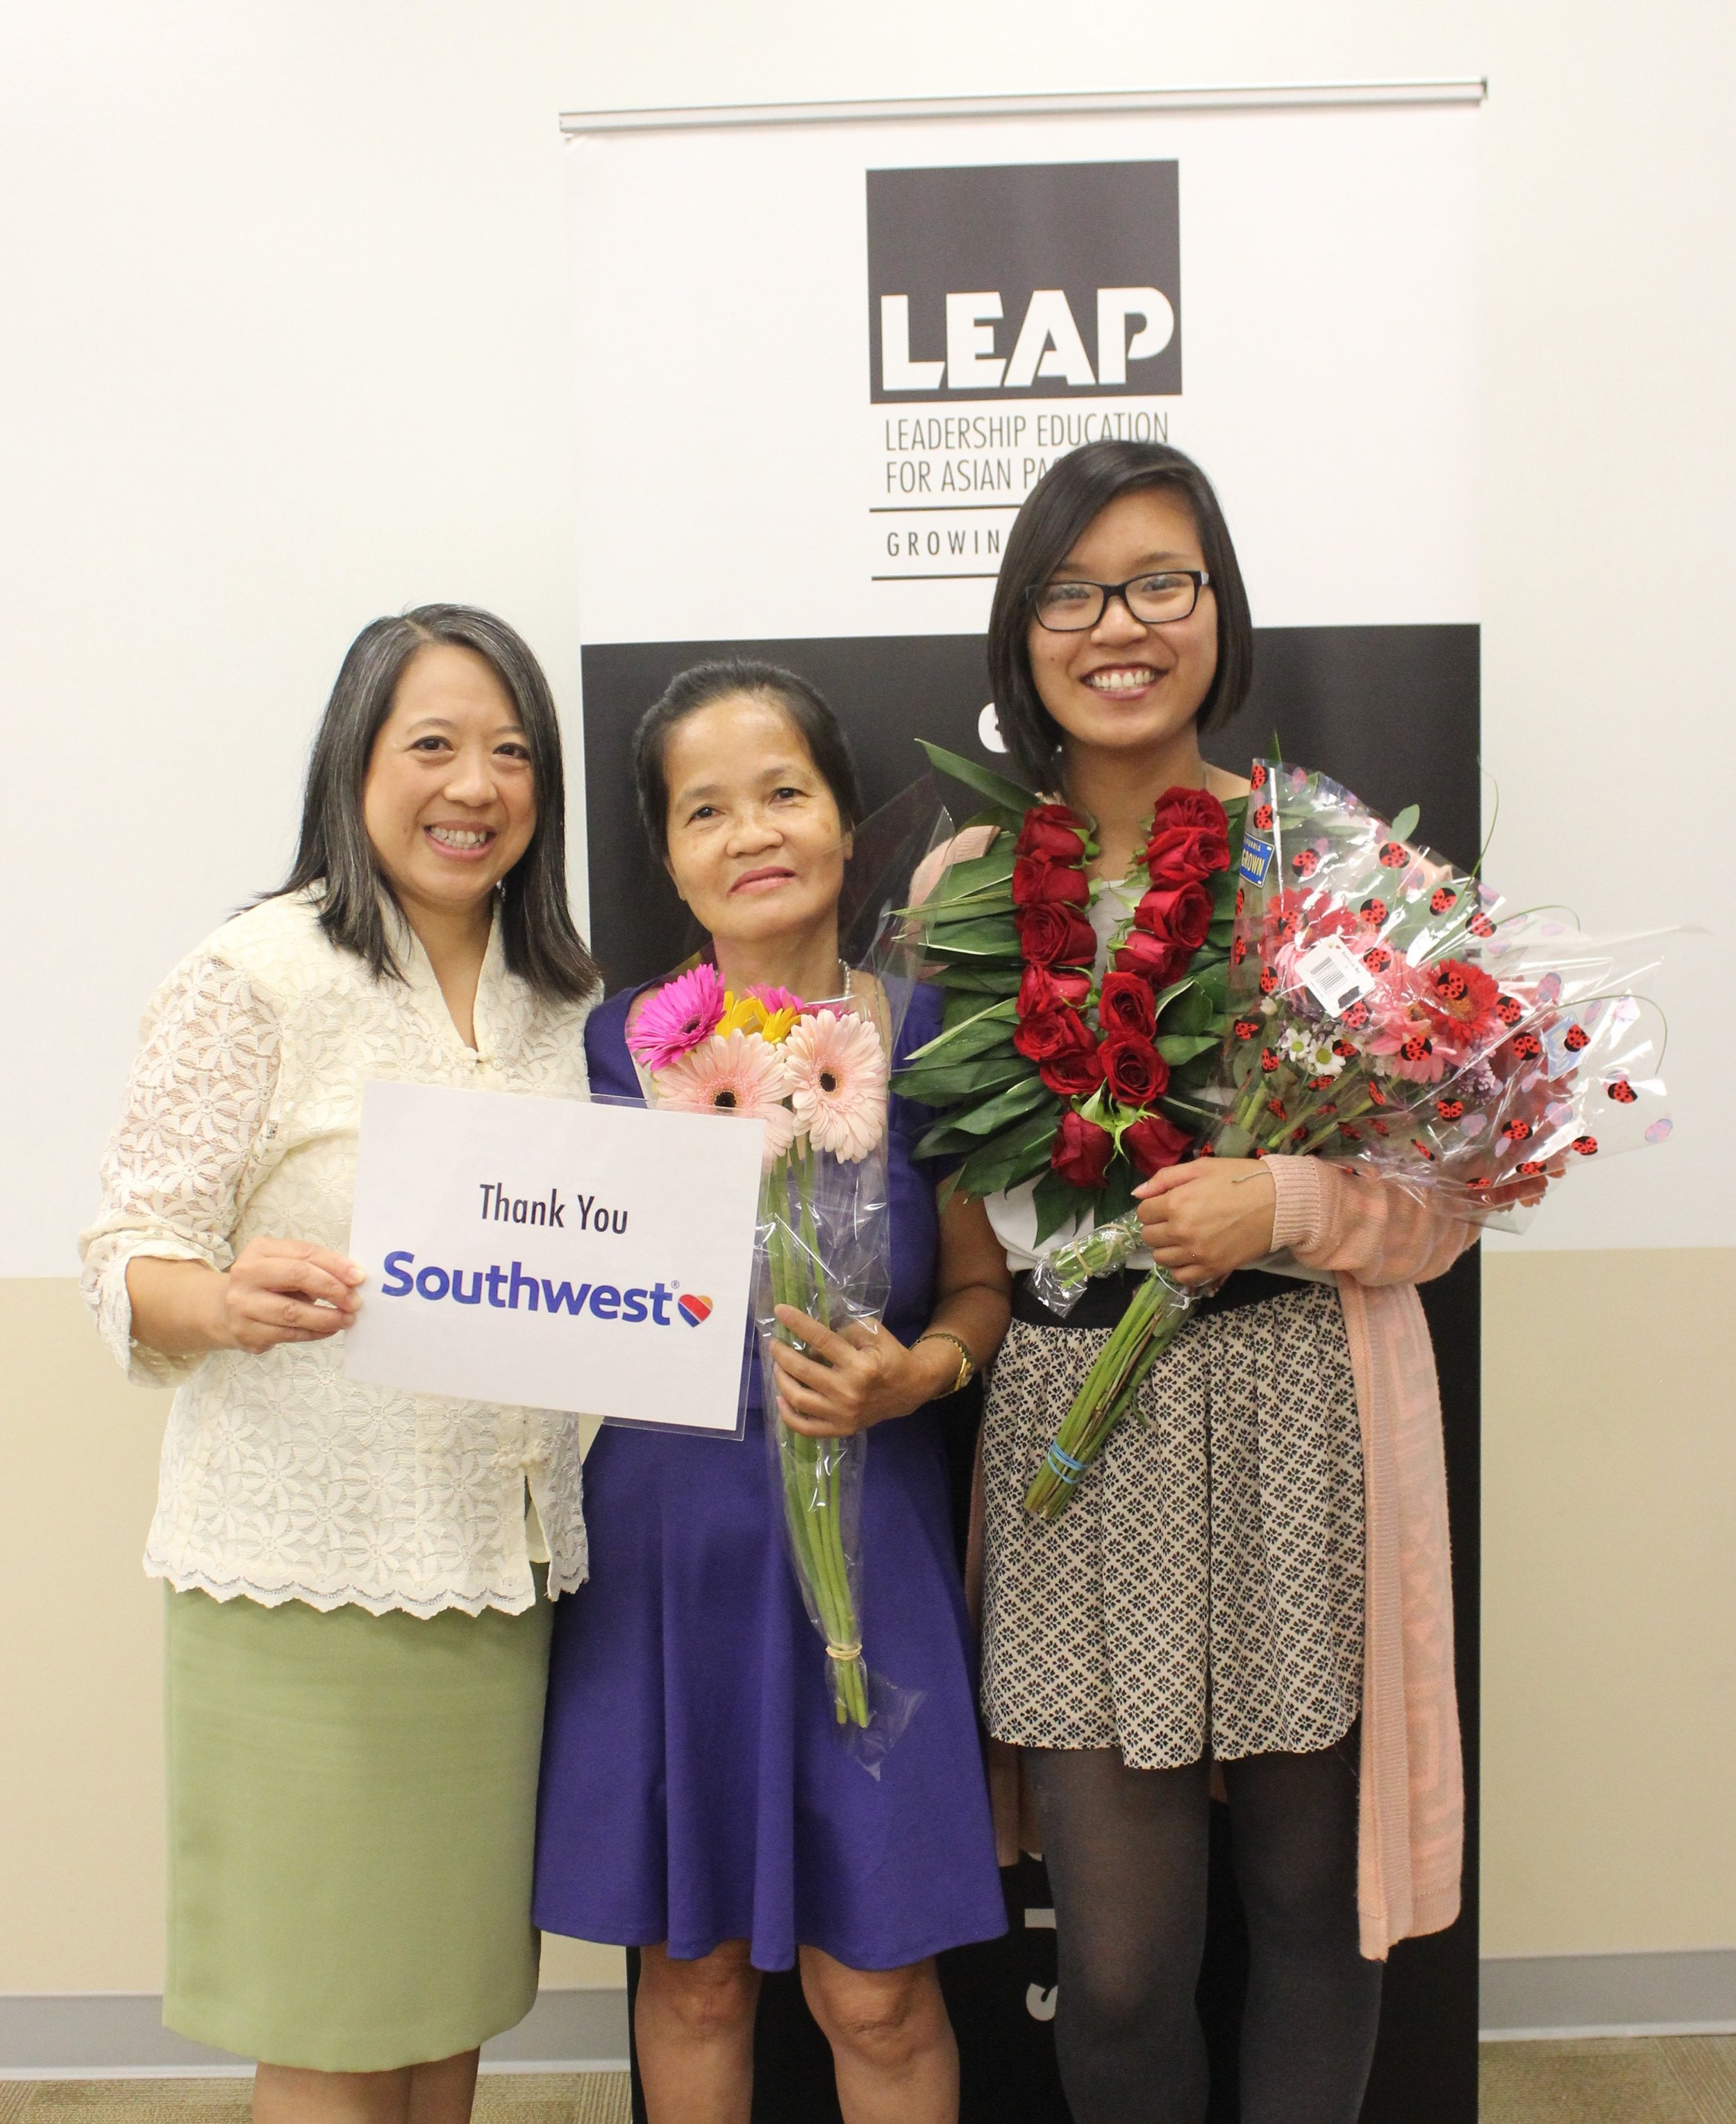 Left to Right: Chancee Martorell (CBO supervisor), Angie's mother, and Angie Tran